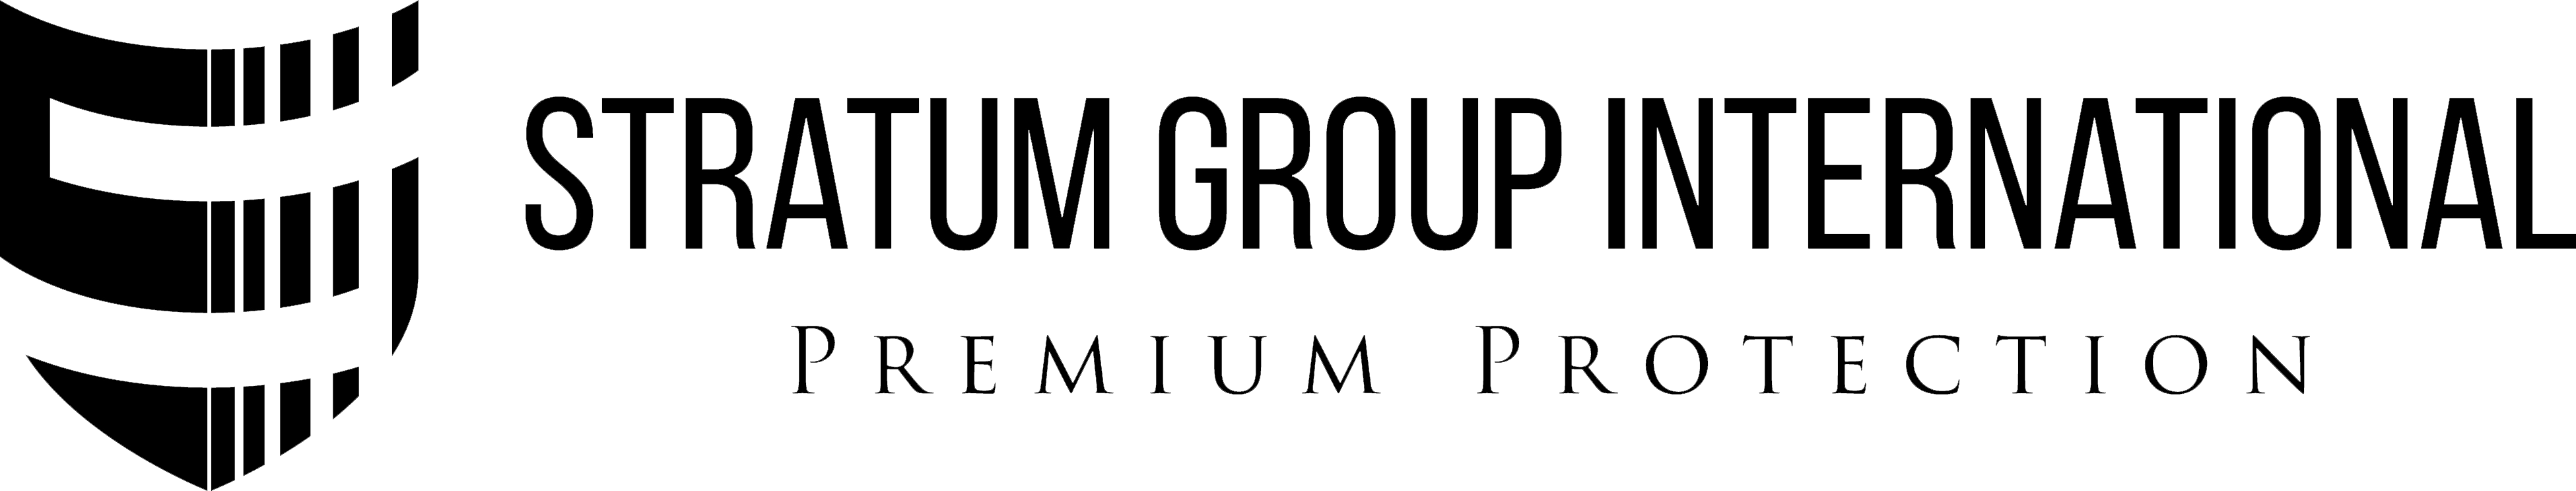 Stratum Group International